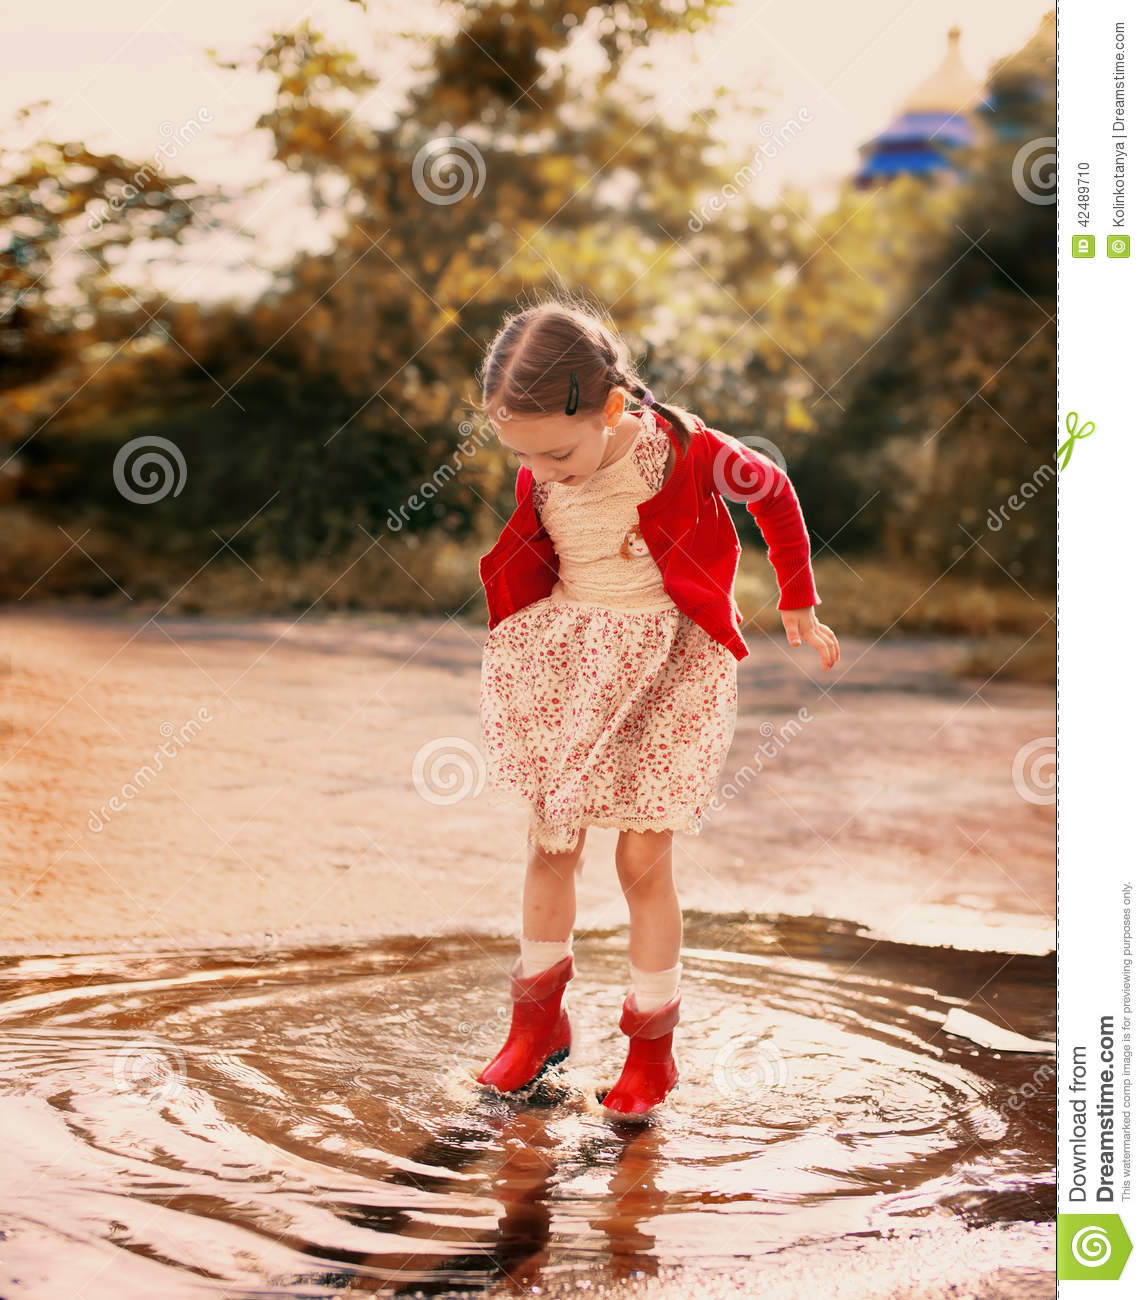 Cute little girl wearing red rain boots jumping into a puddle.